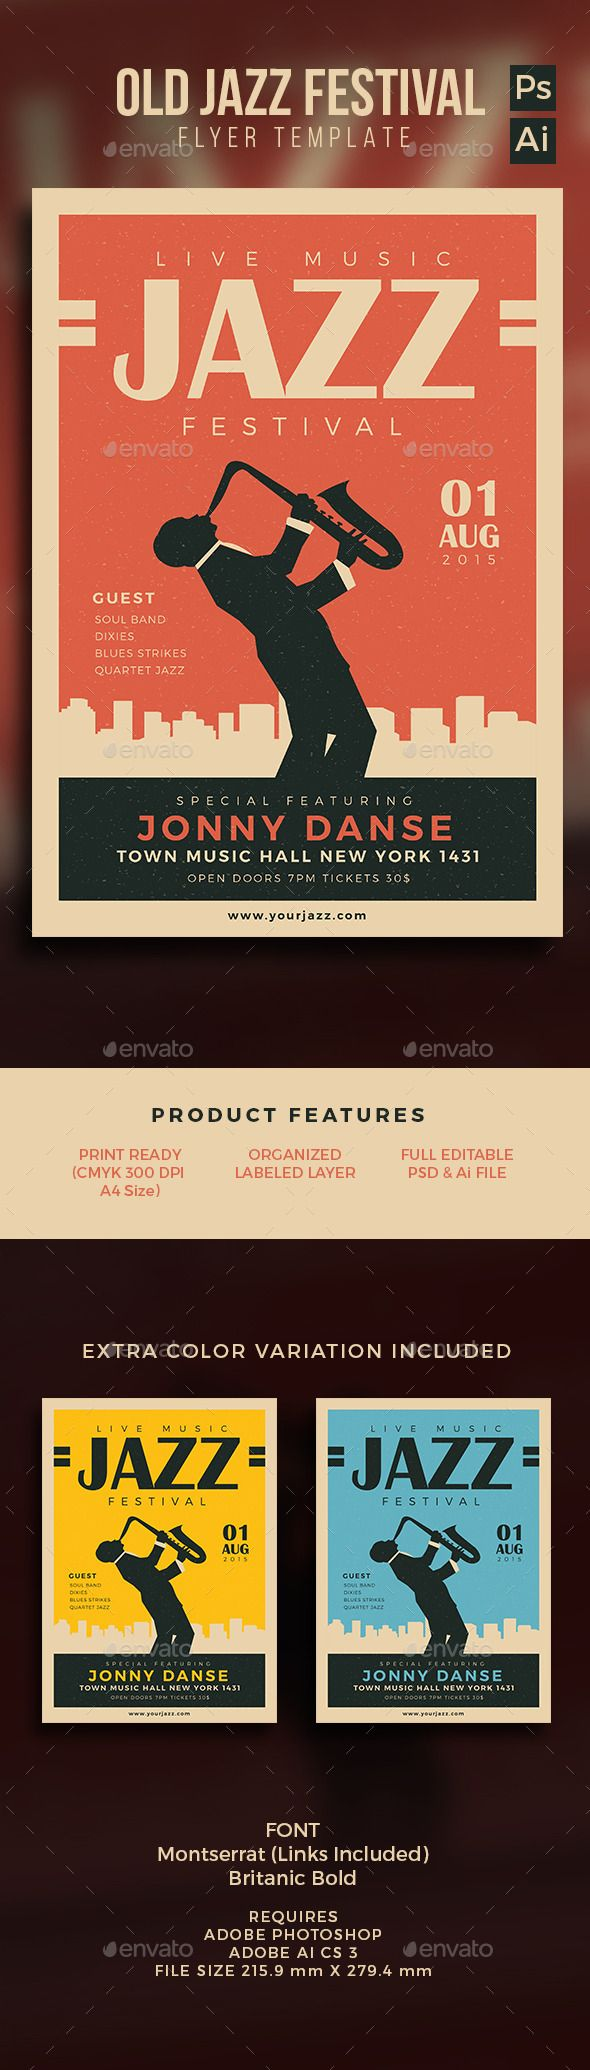 Old Jazz Festival Flyer — Photoshop PSD #psd #jazz night flyer • Available here → https://graphicriver.net/item/old-jazz-festival-flyer/12866487?ref=pxcr